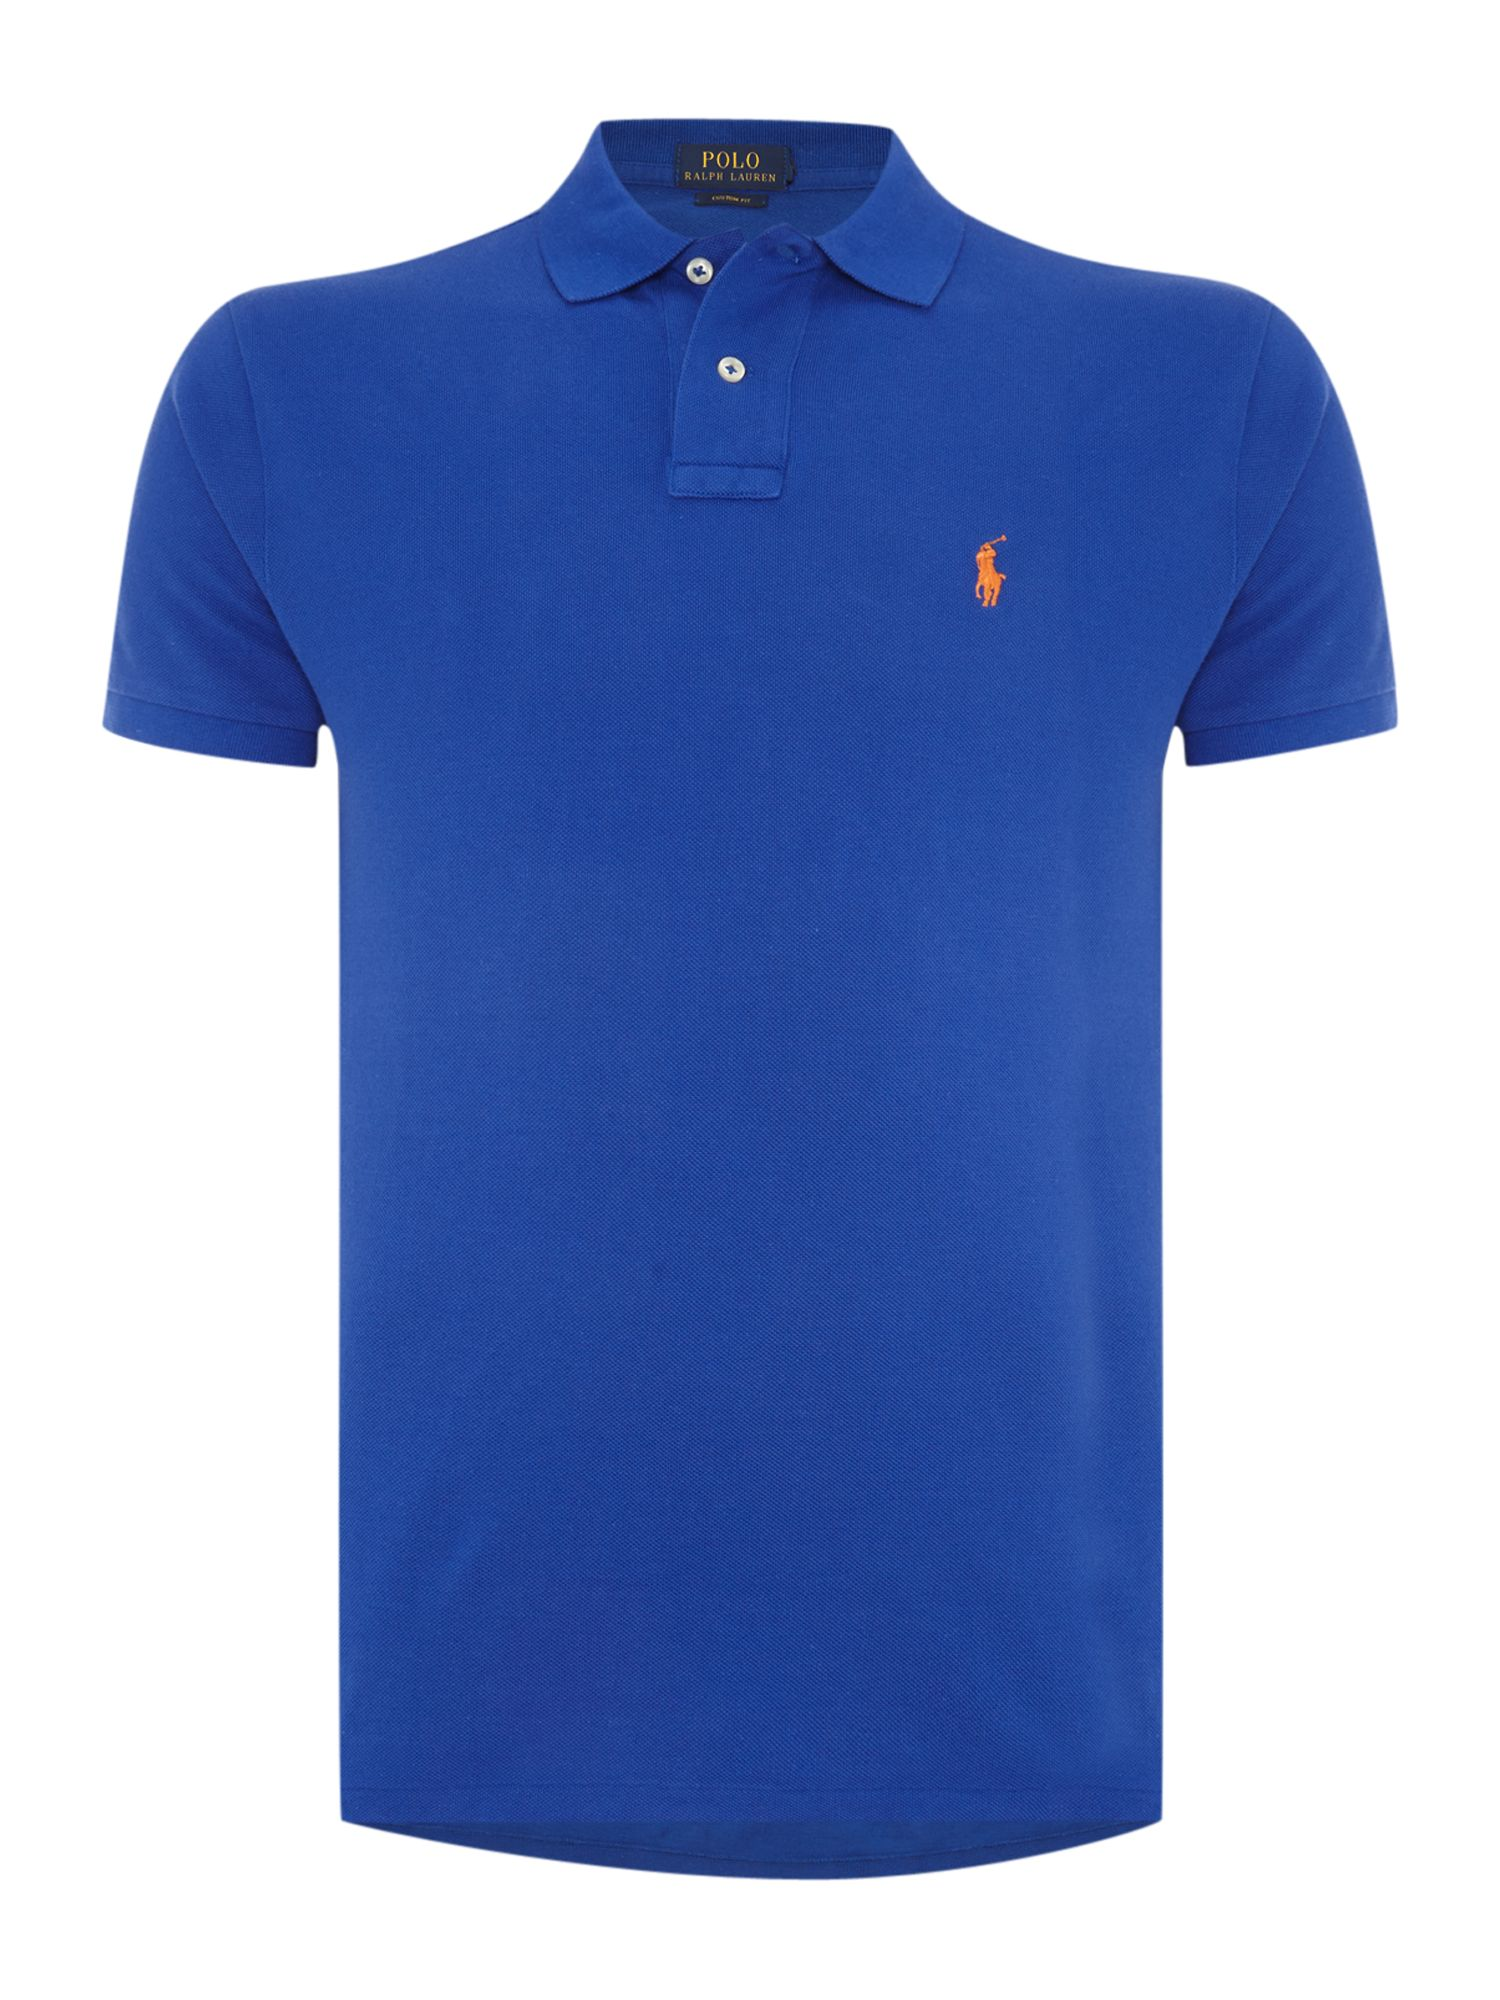 Polo shirt - Wikipedia.